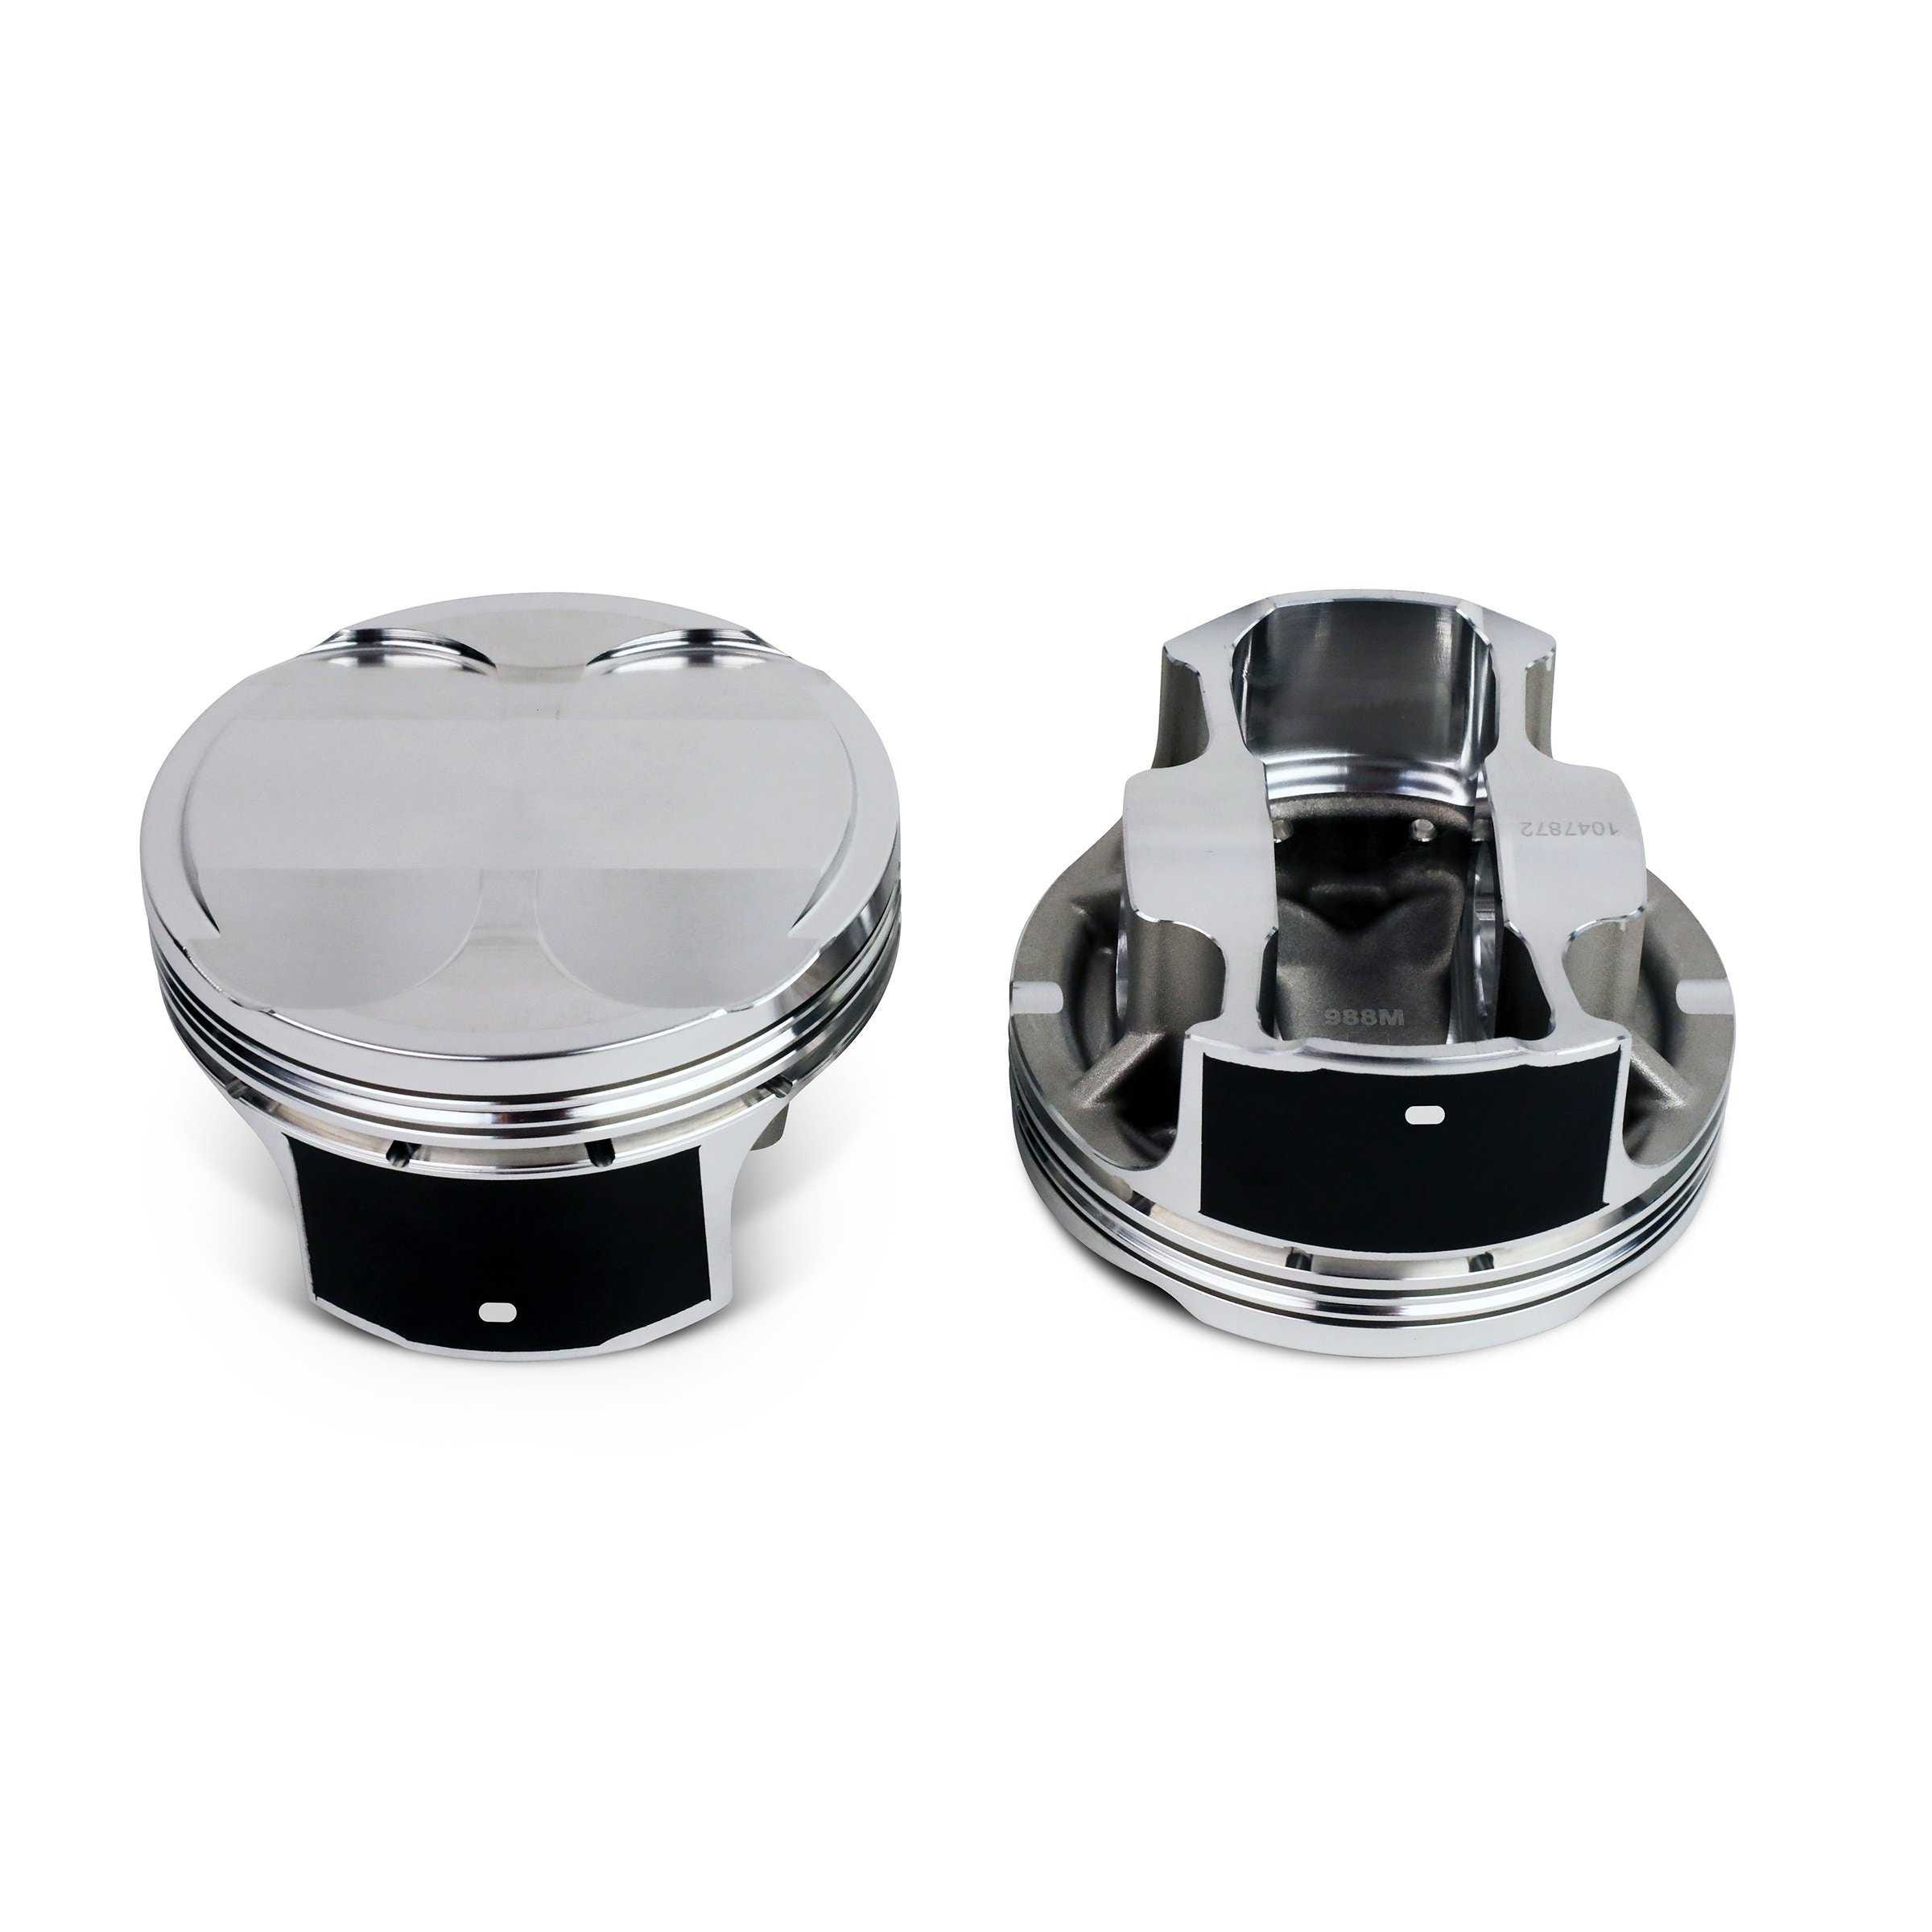 Introducing JE's 2018 Ford Coyote 5.0L Pistons.